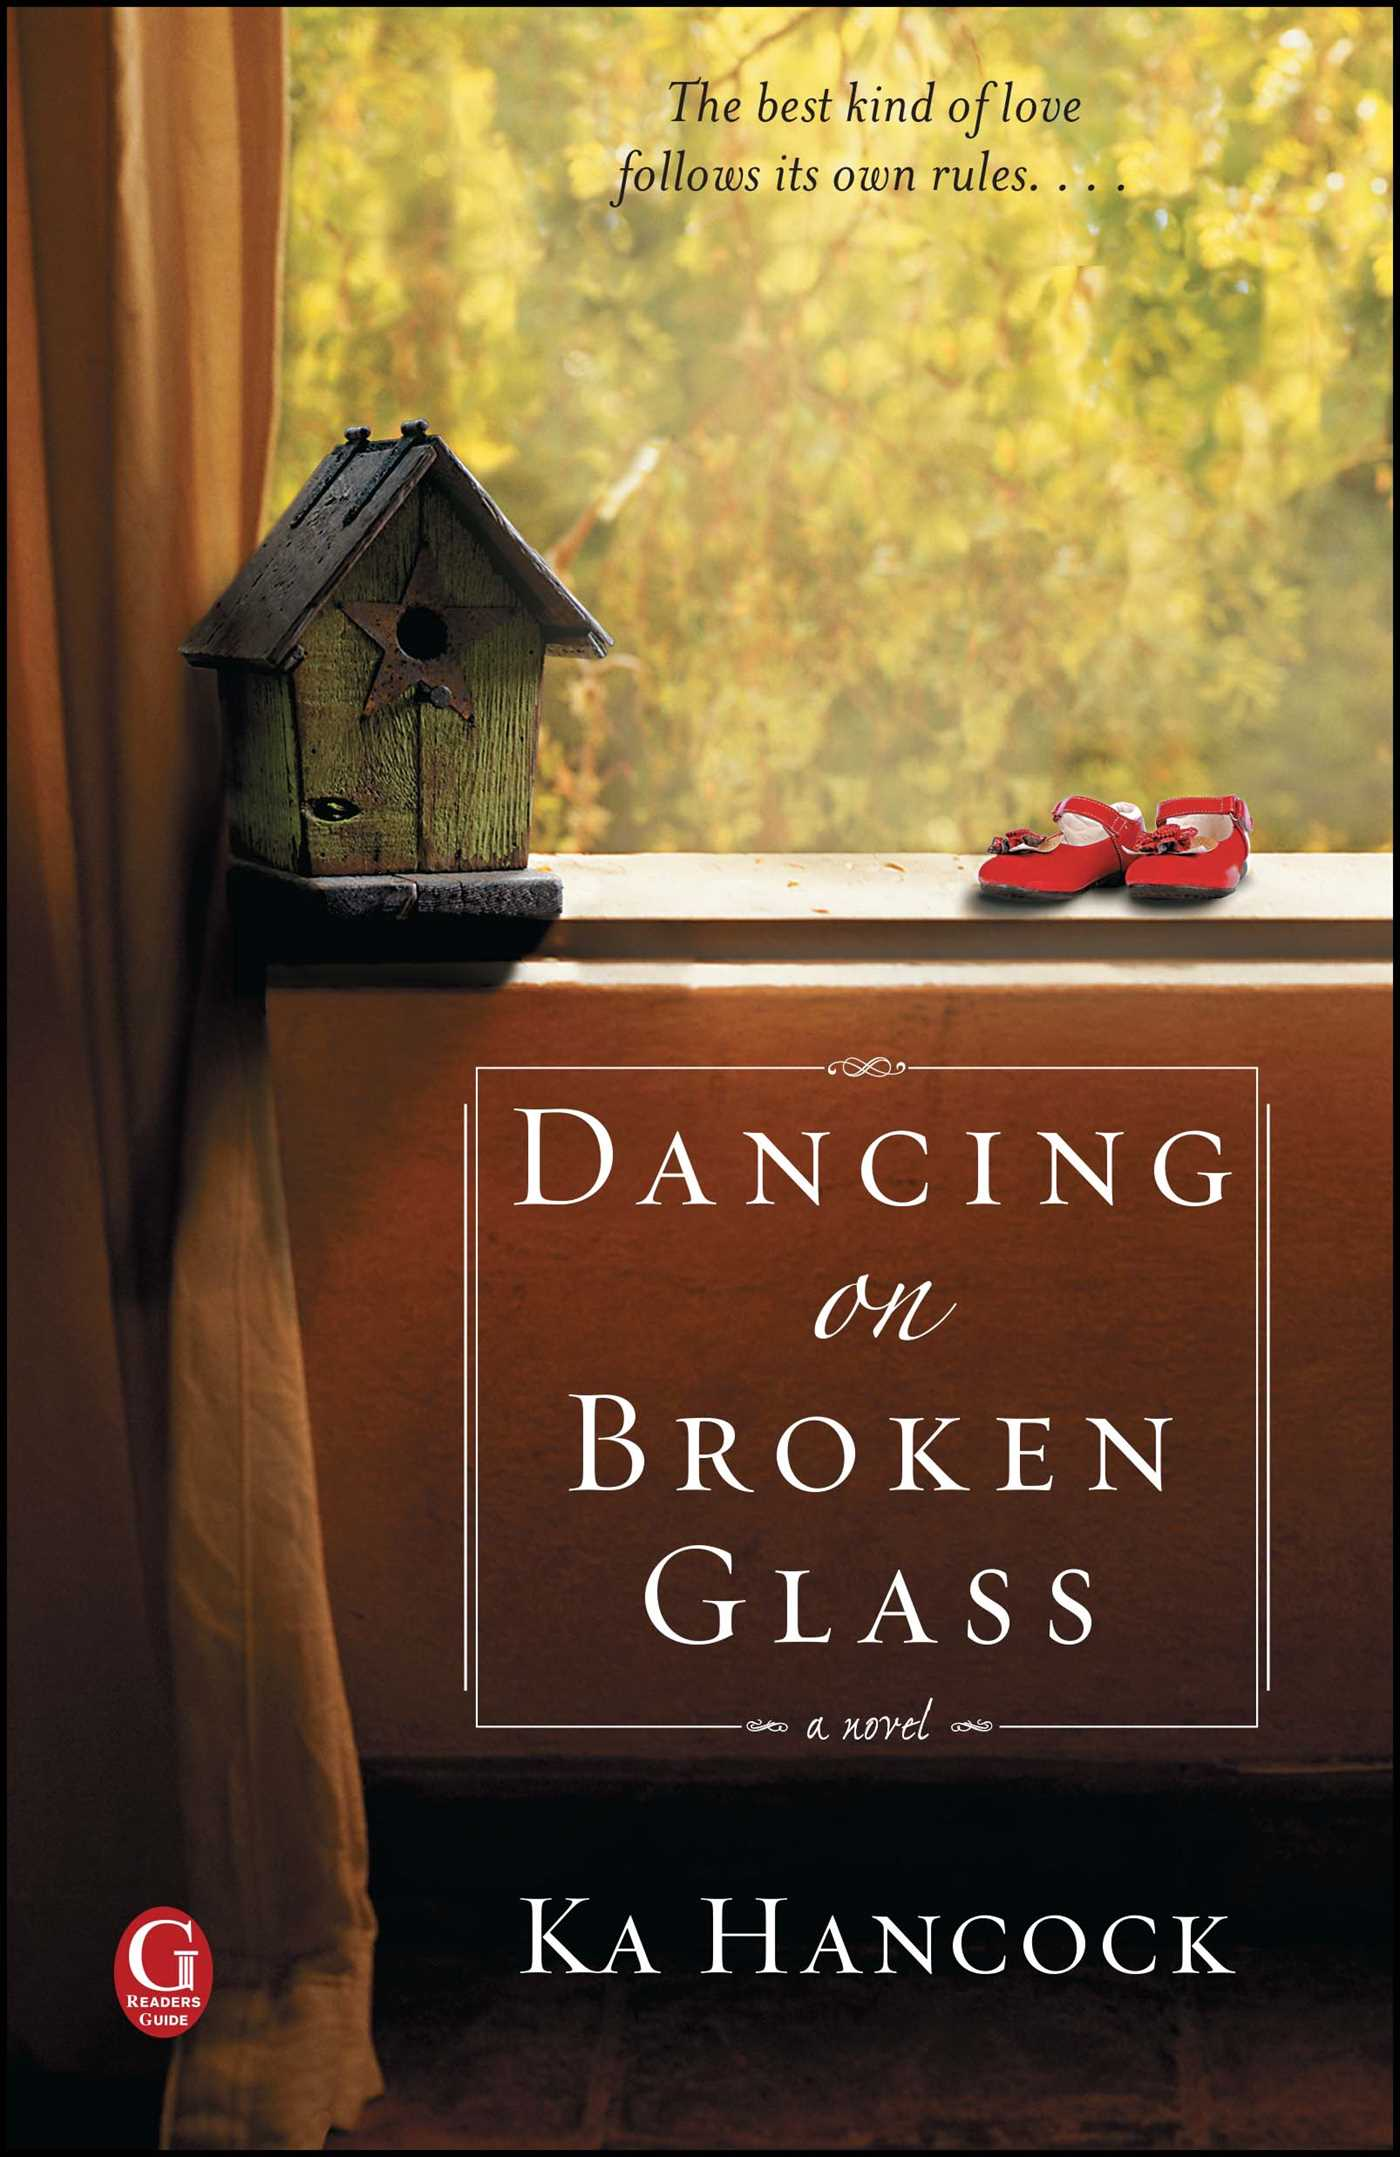 Dancing on broken glass 9781451637373 hr